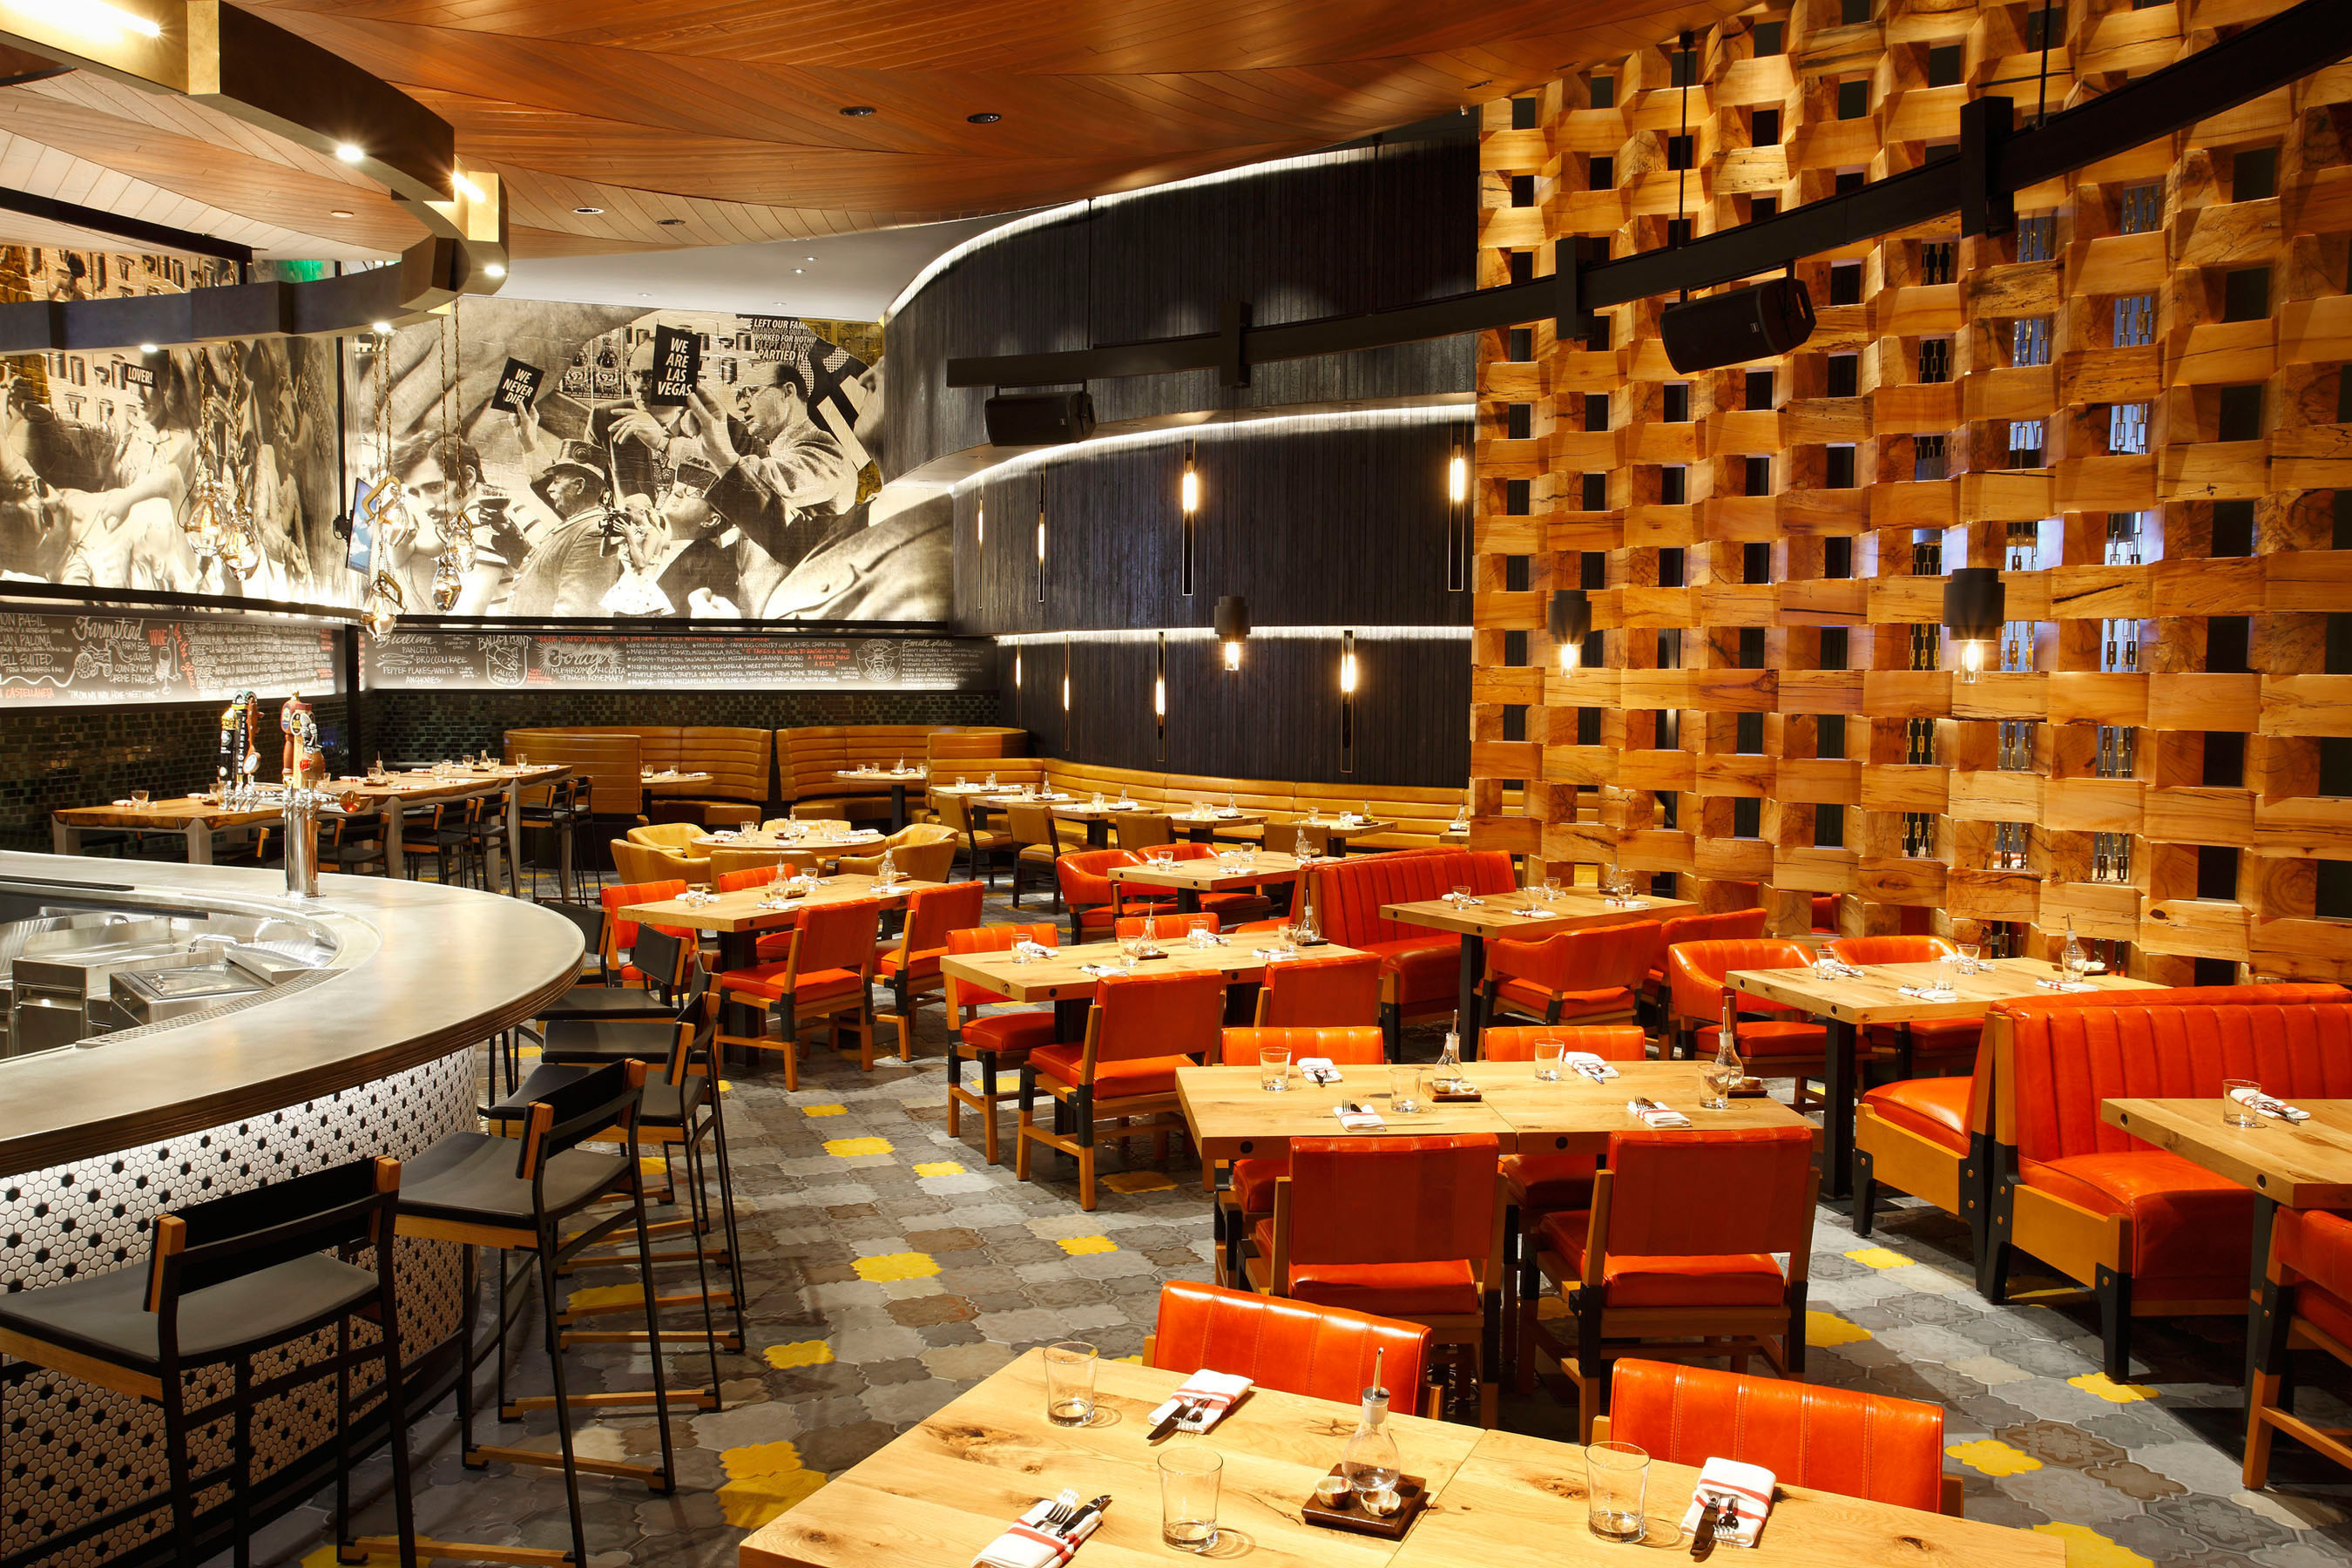 Cucina Las Vegas The Best Restaurant Architects In Las Vegas Las Vegas Architects